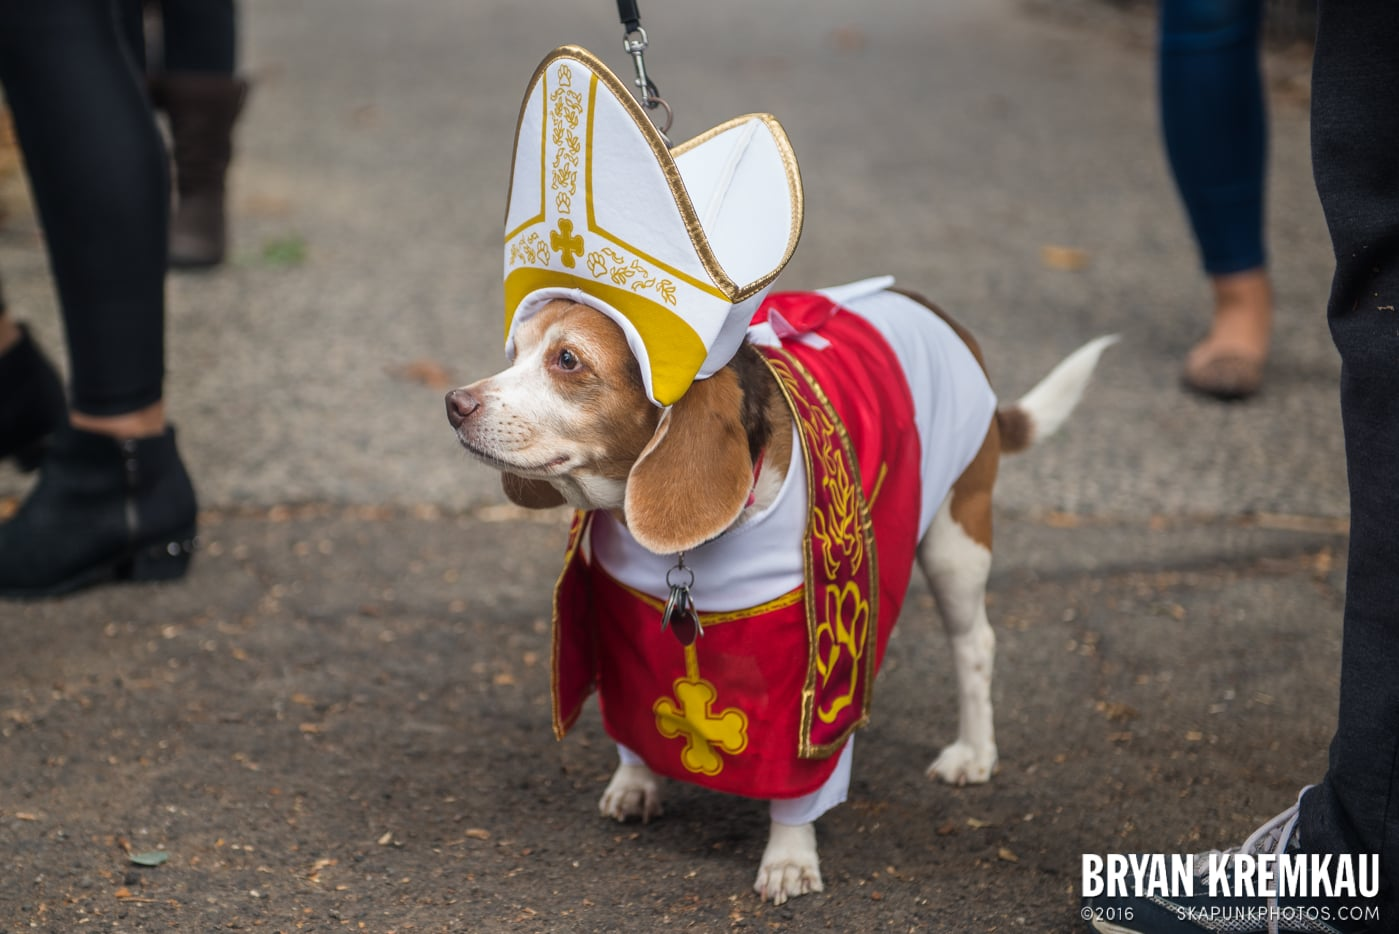 Tompkins Square Halloween Dog Parade 2015 @ Tompkins Square Park, NYC – 10.24.15 (65)